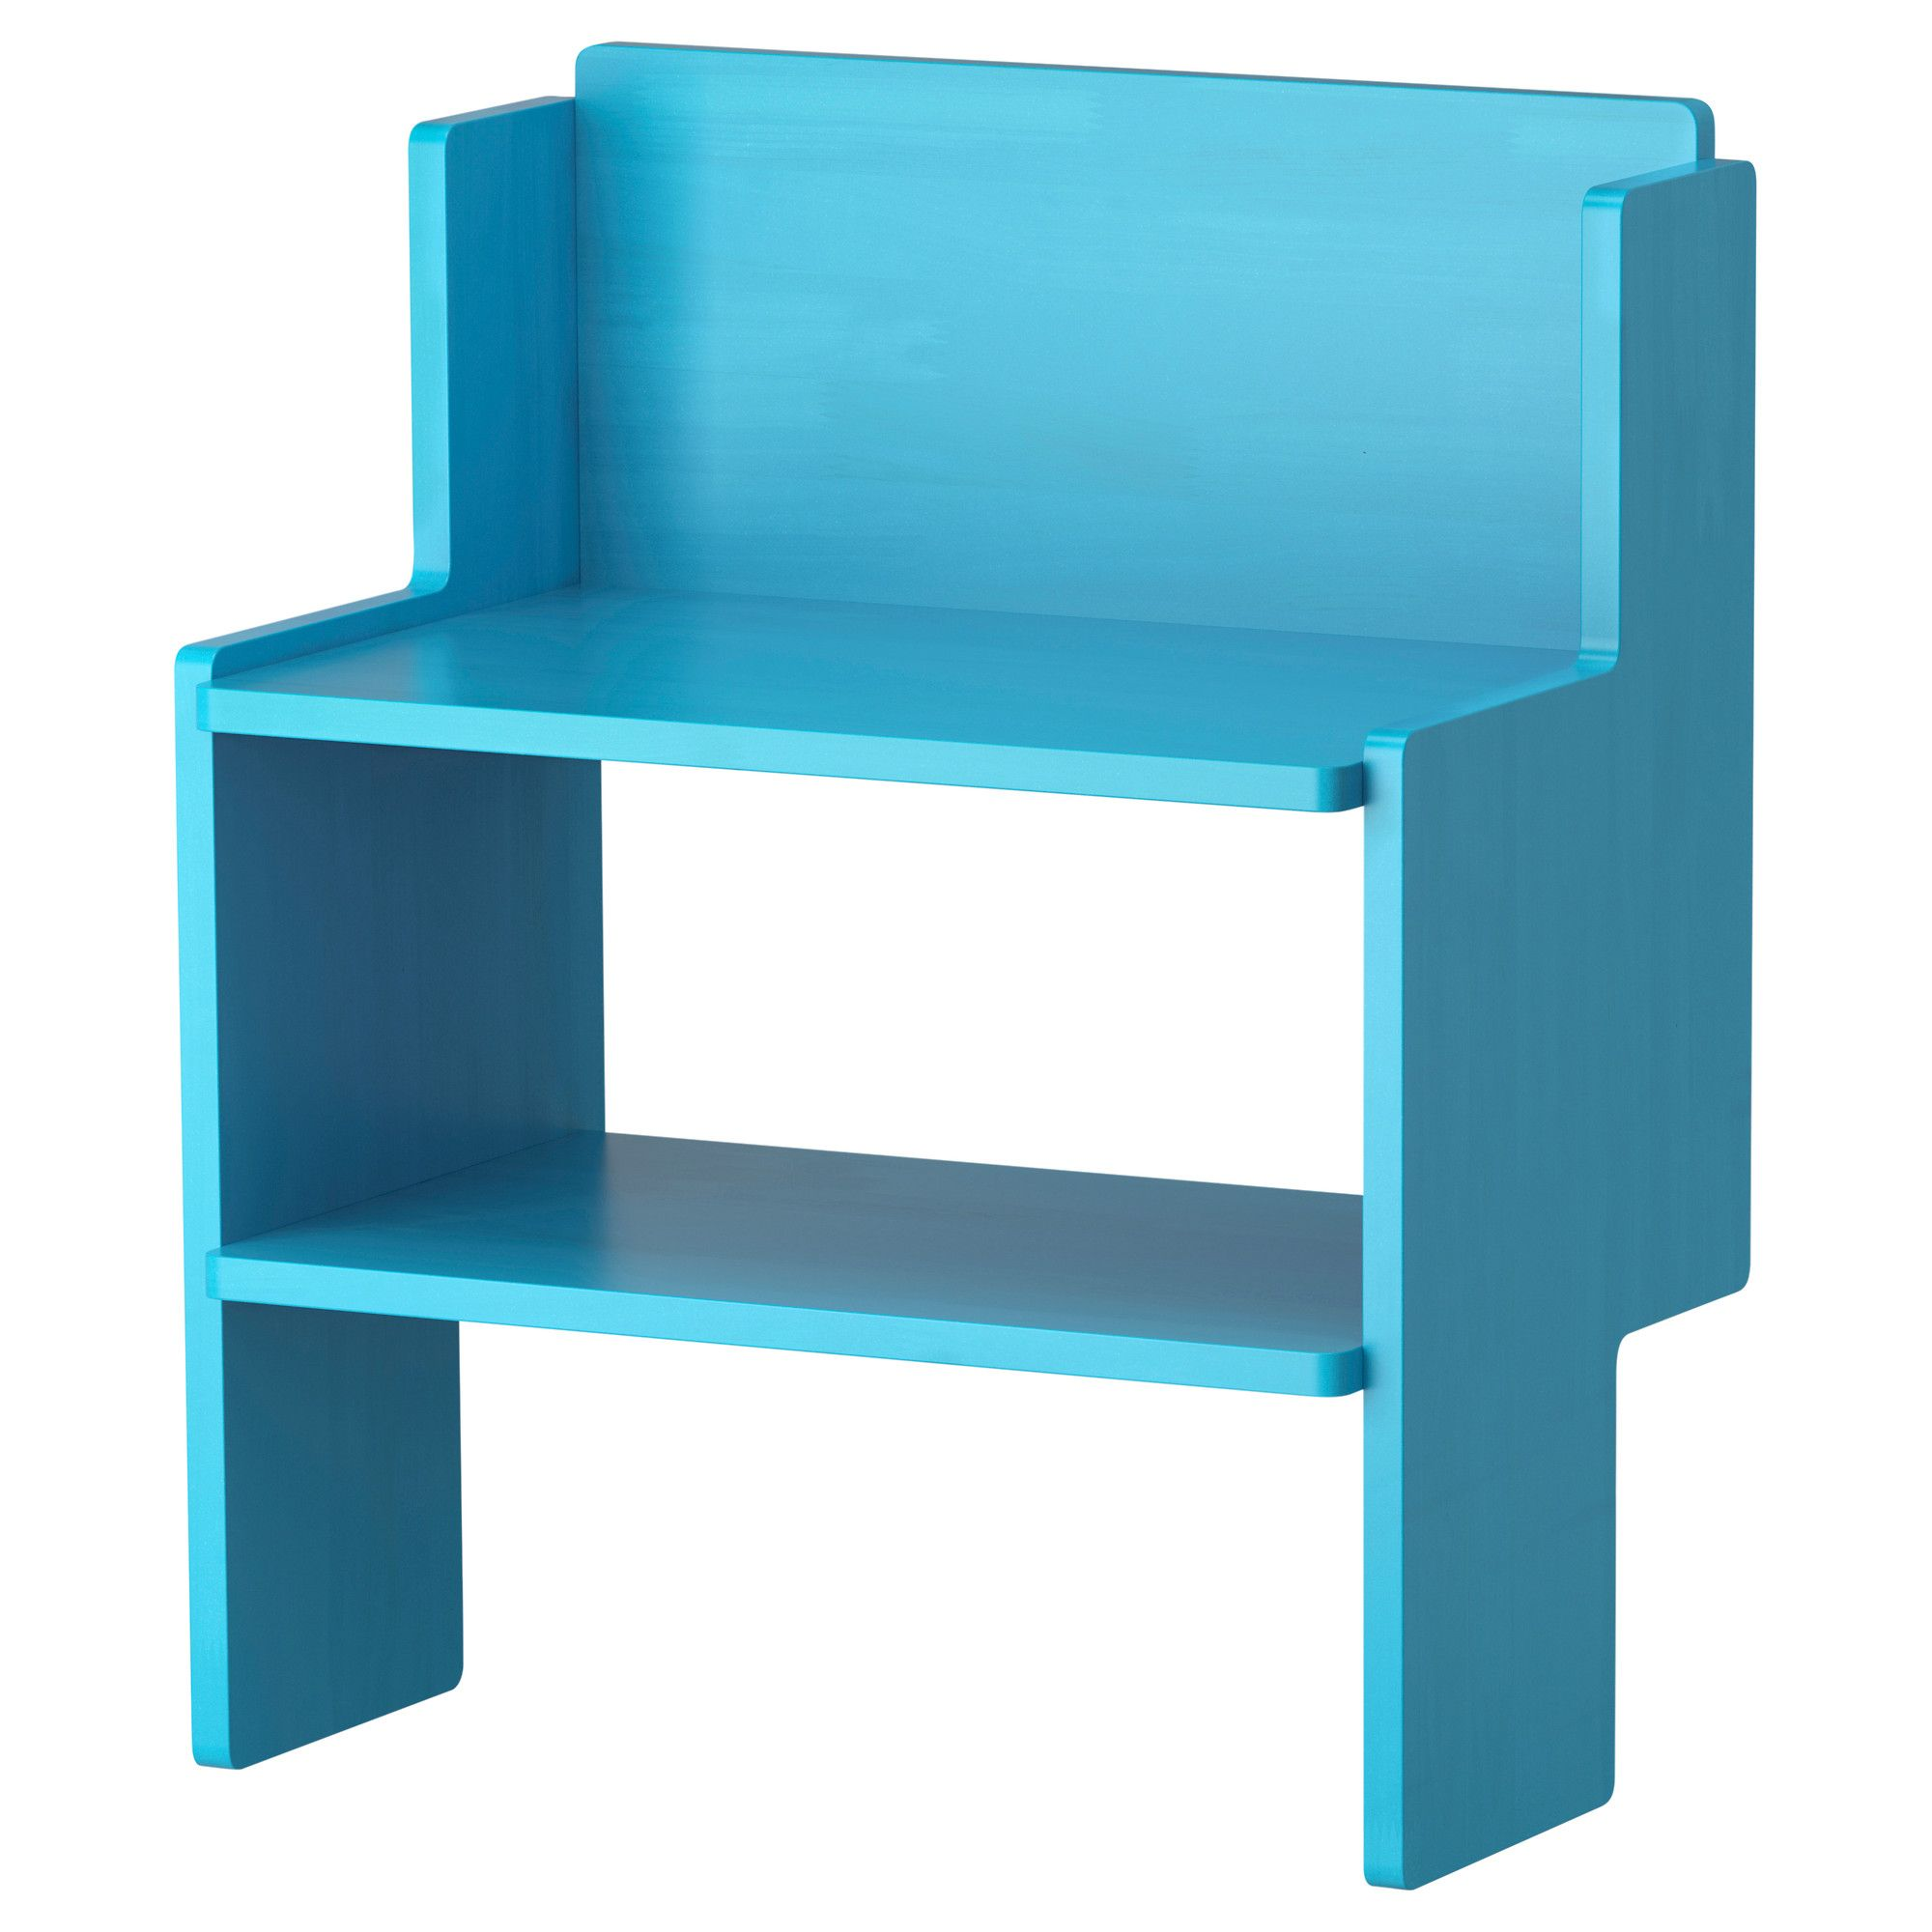 Hemnes Bank Mit Schuhablage Ikea Ps 2012 Bench With Shoe Storage Blue Ikea Home Decors